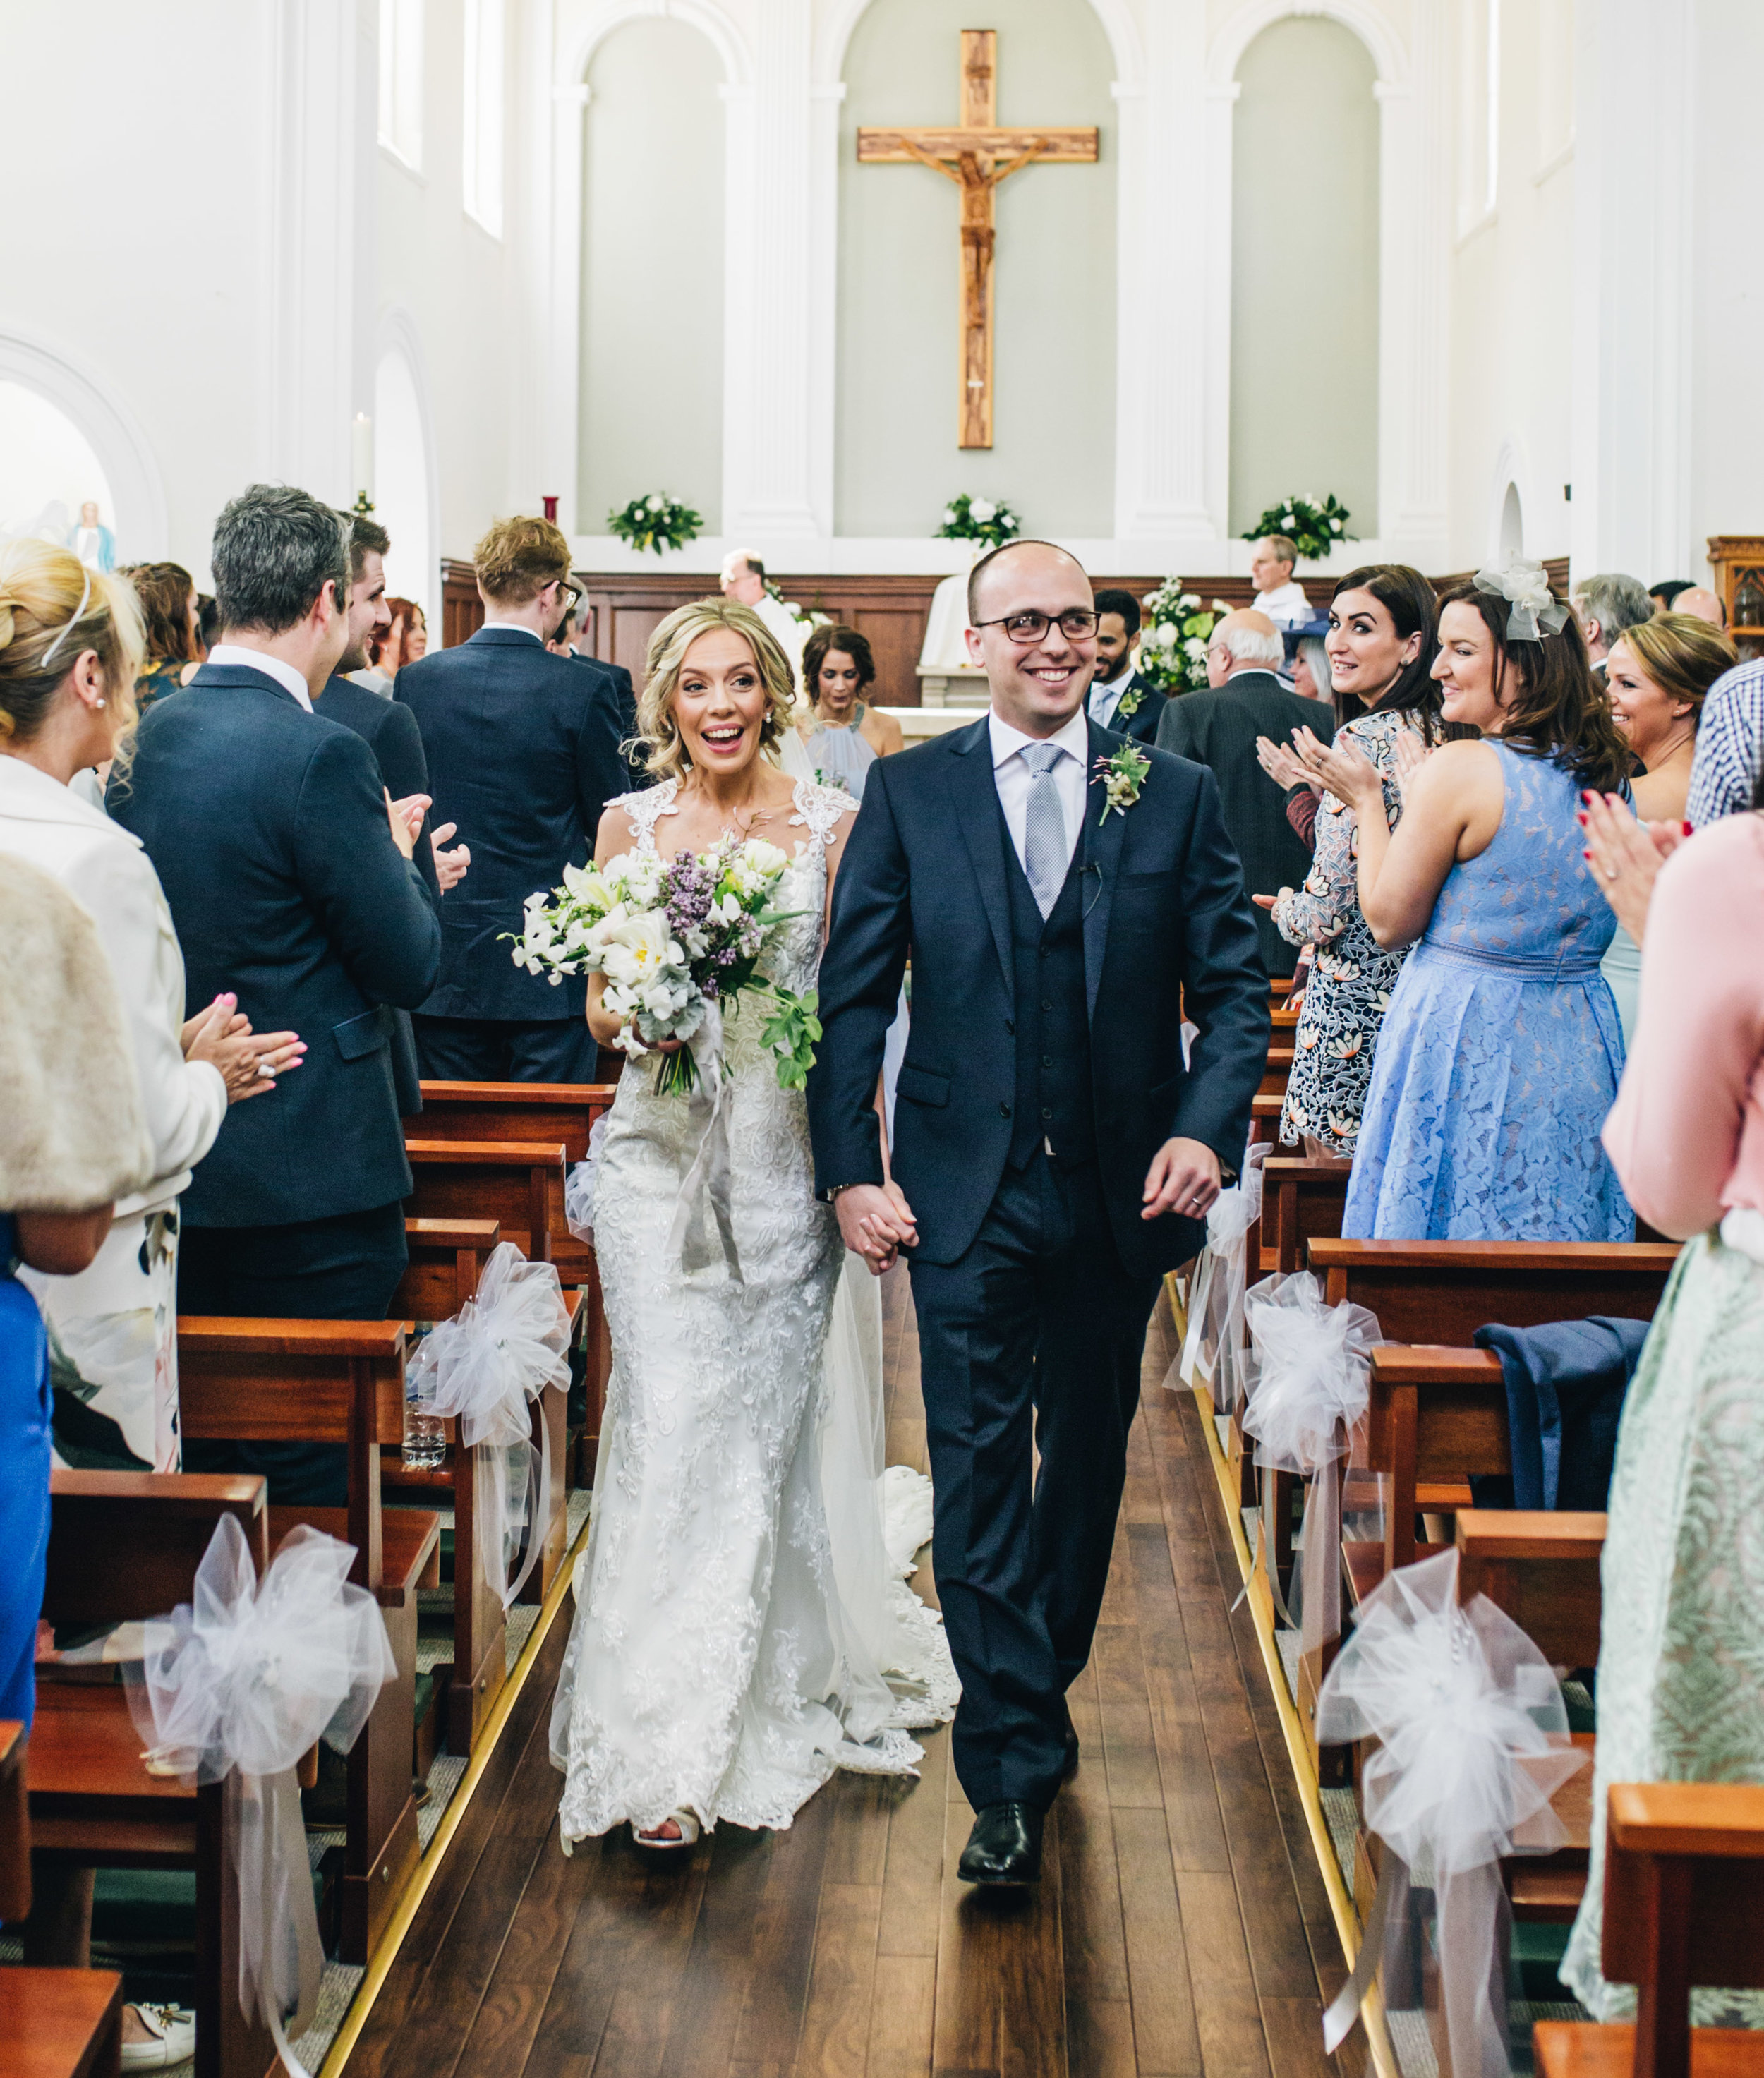 Cheshire wedding photography - leaving church as newlyweds